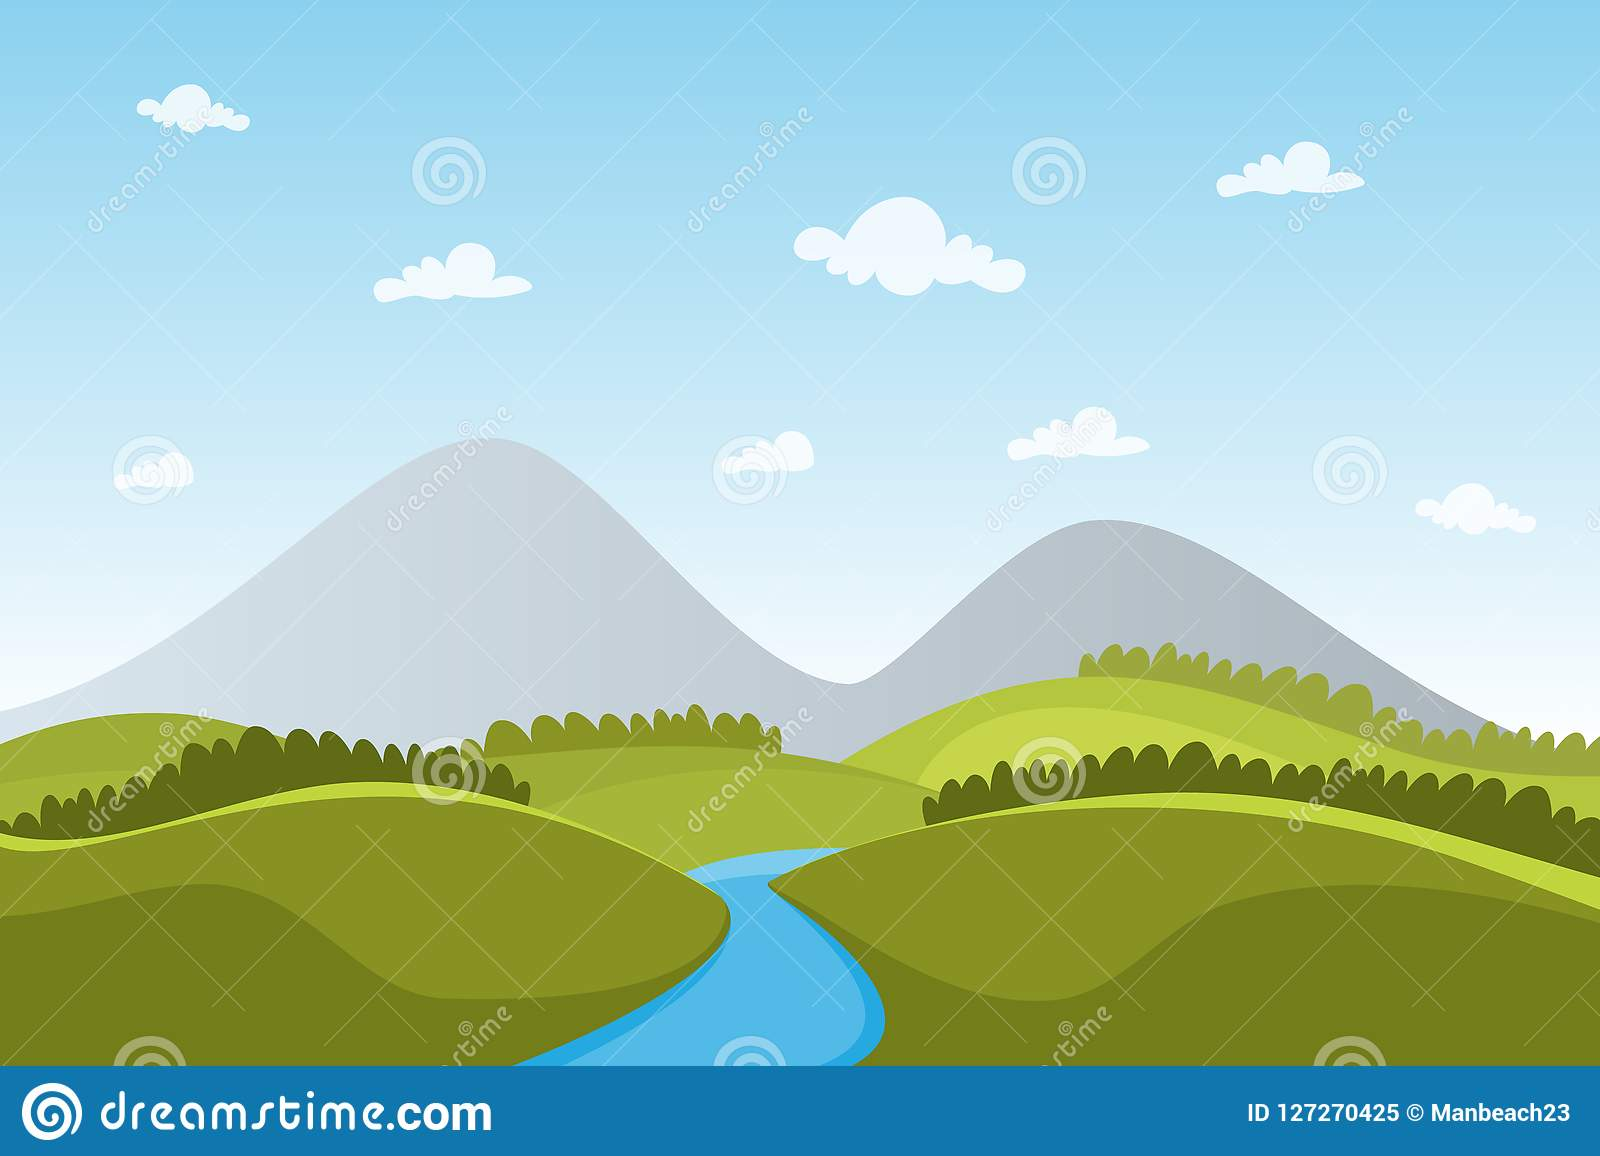 View Landscape Nature Mountain Vector For Poster Stock Vector